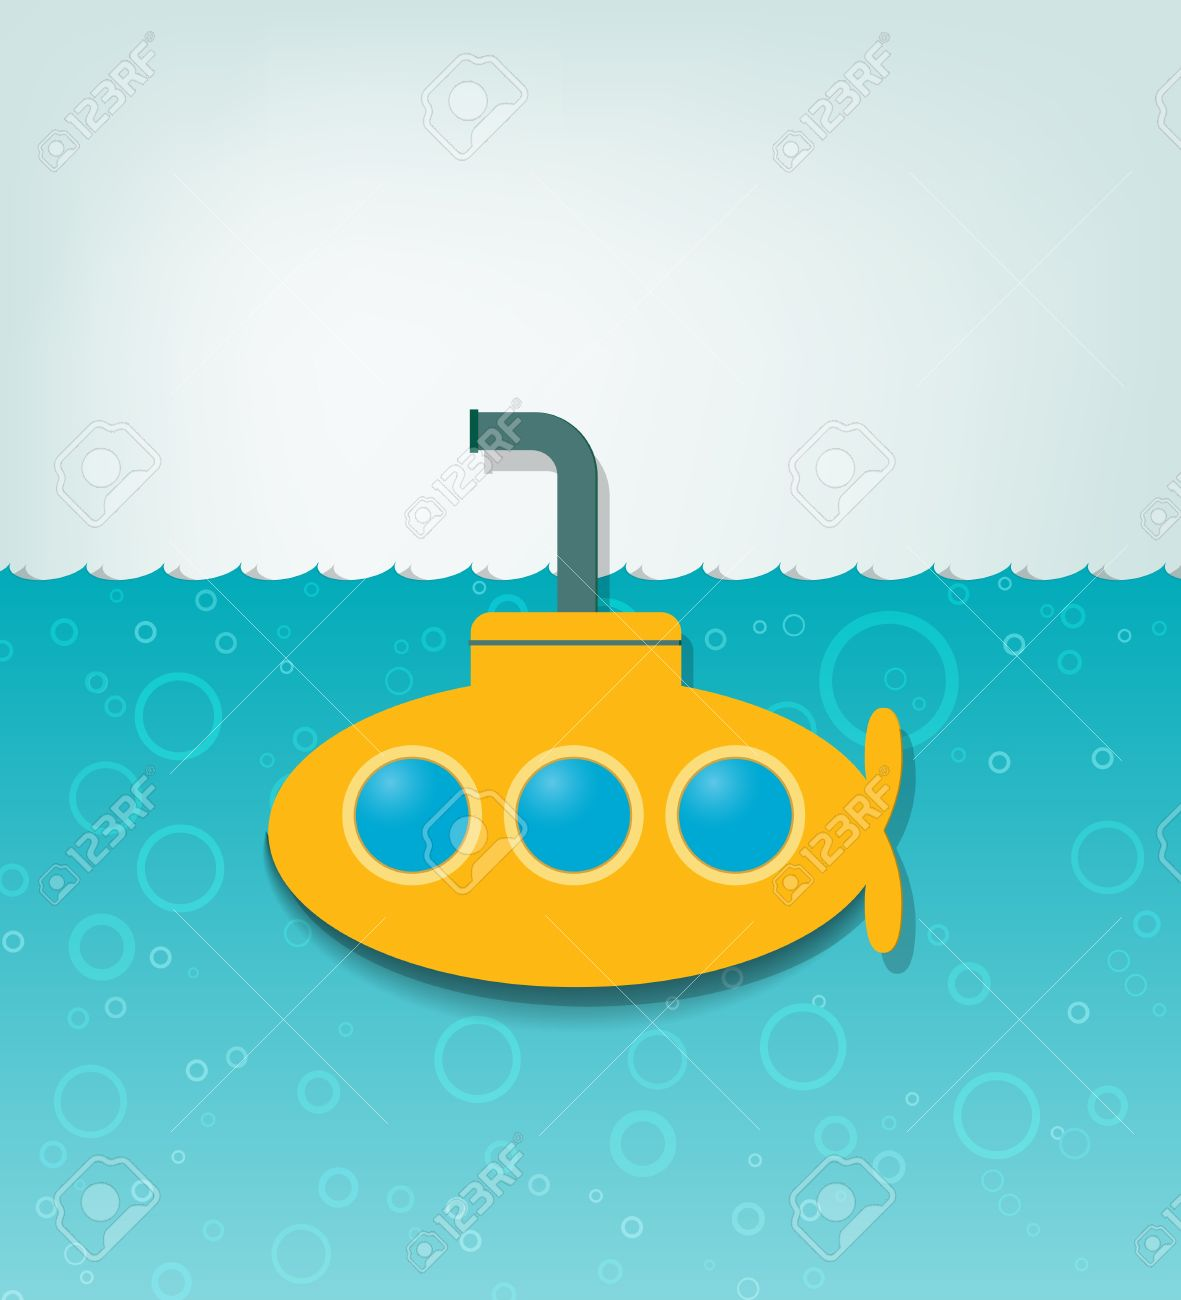 creative illustration with a yellow submarine - 15144243